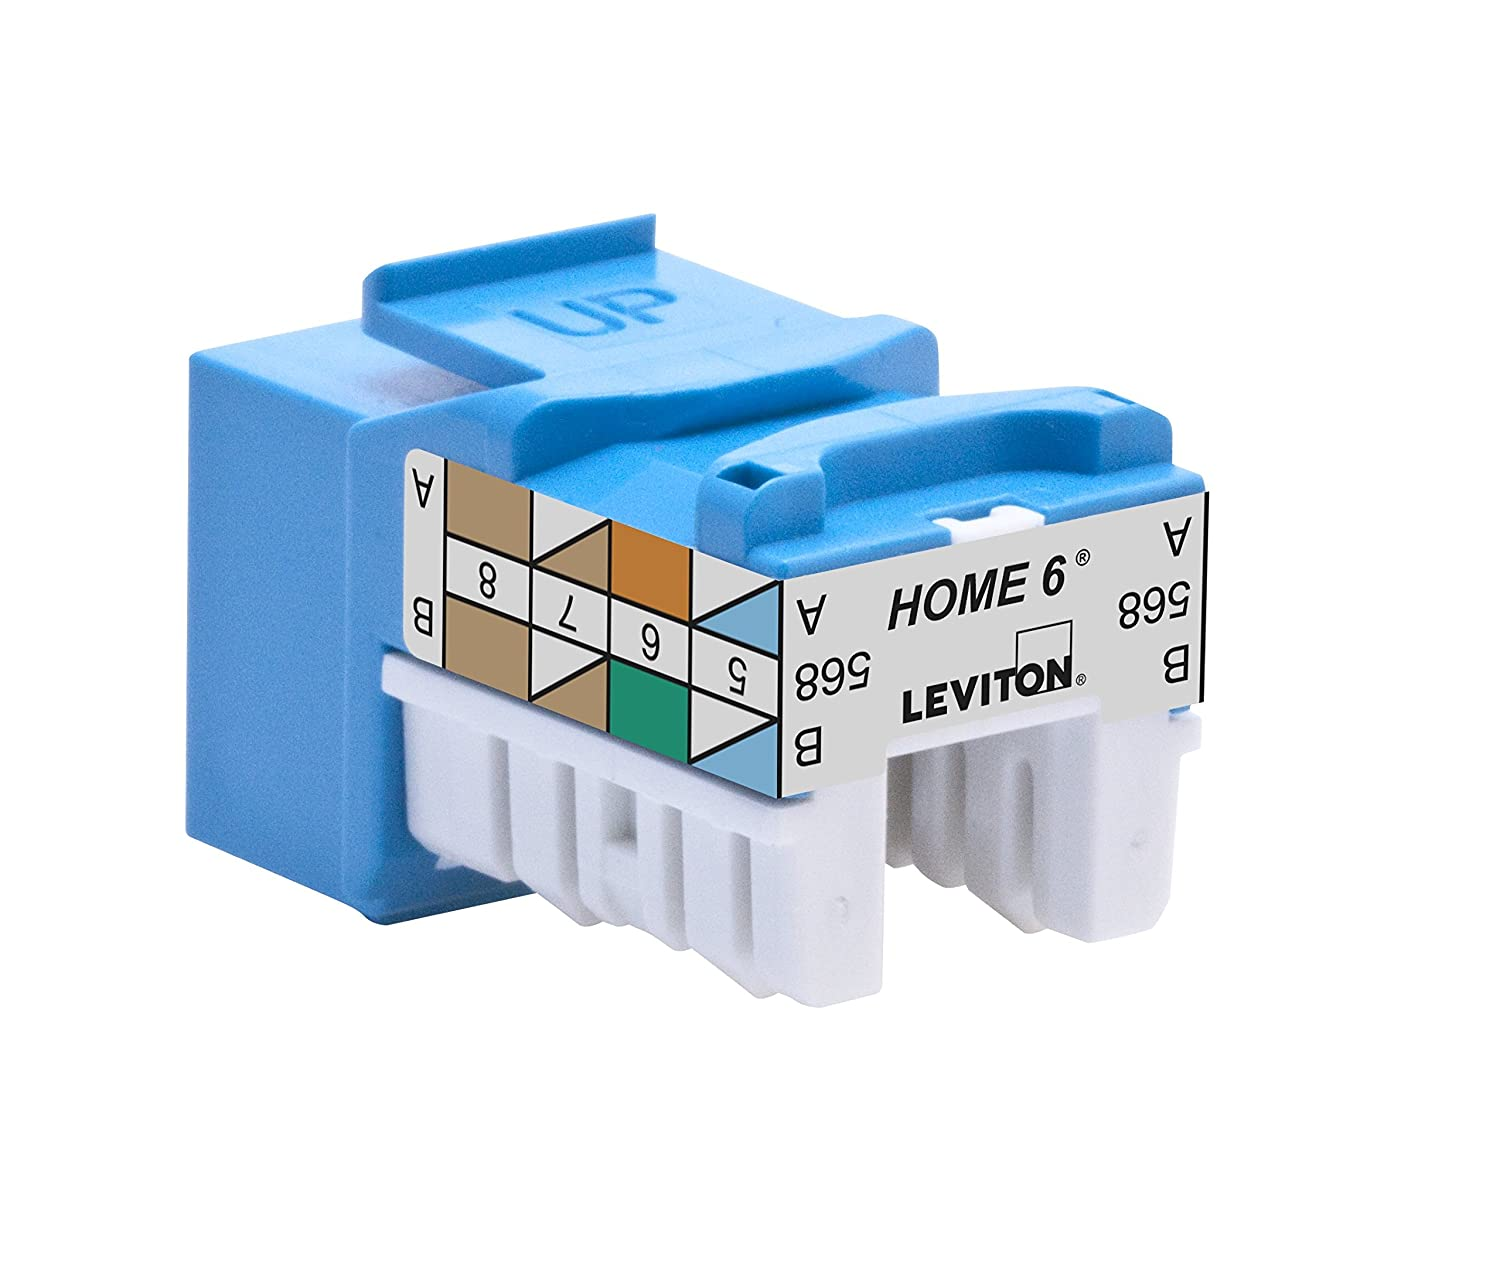 Leviton 61HOM-RL6 Home 6 Snap-In Connector, T568A/B Wiring, Blue ...